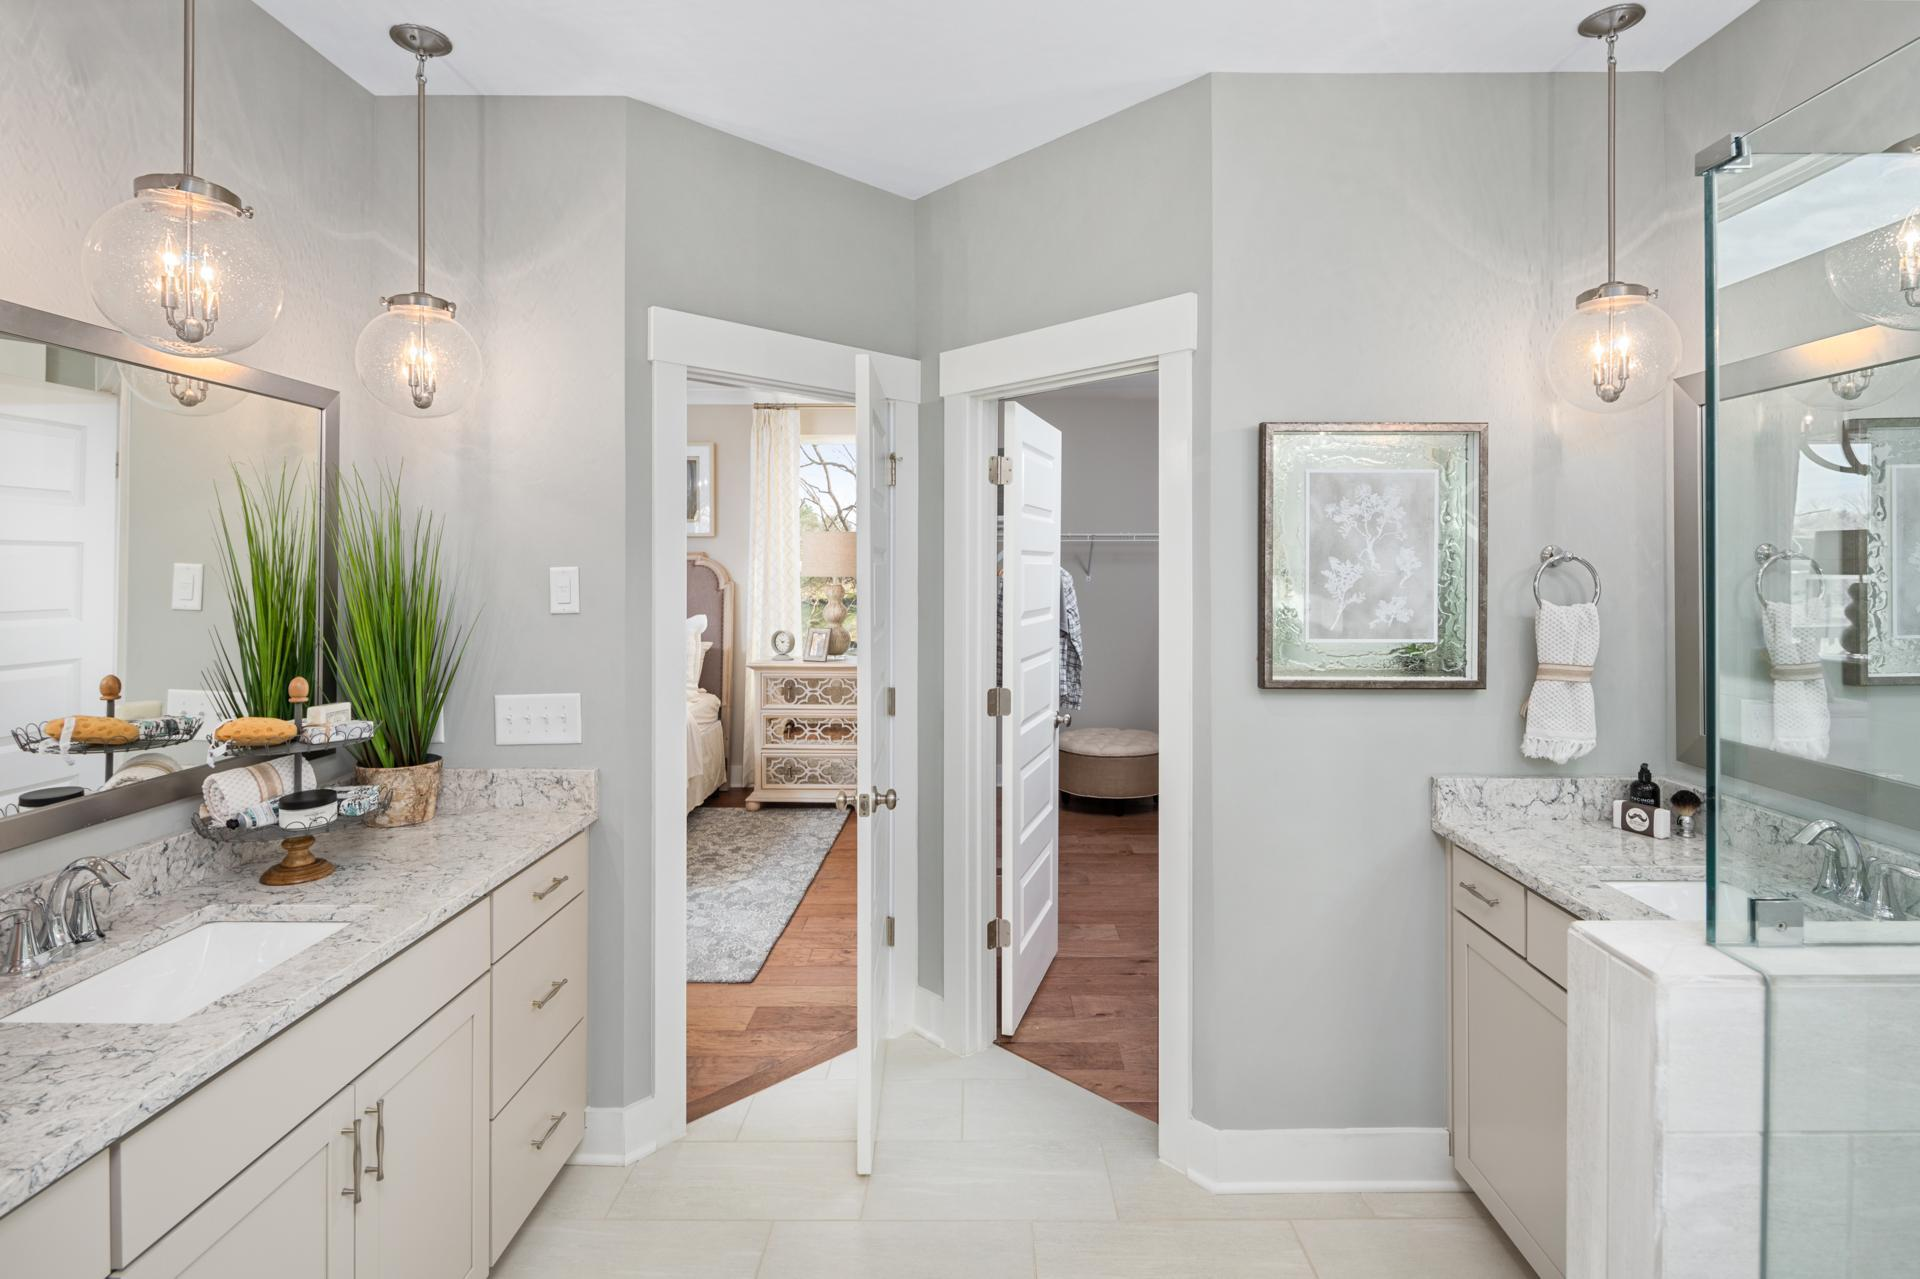 Bathroom featured in the Kinsley By Drees Homes in Nashville, TN